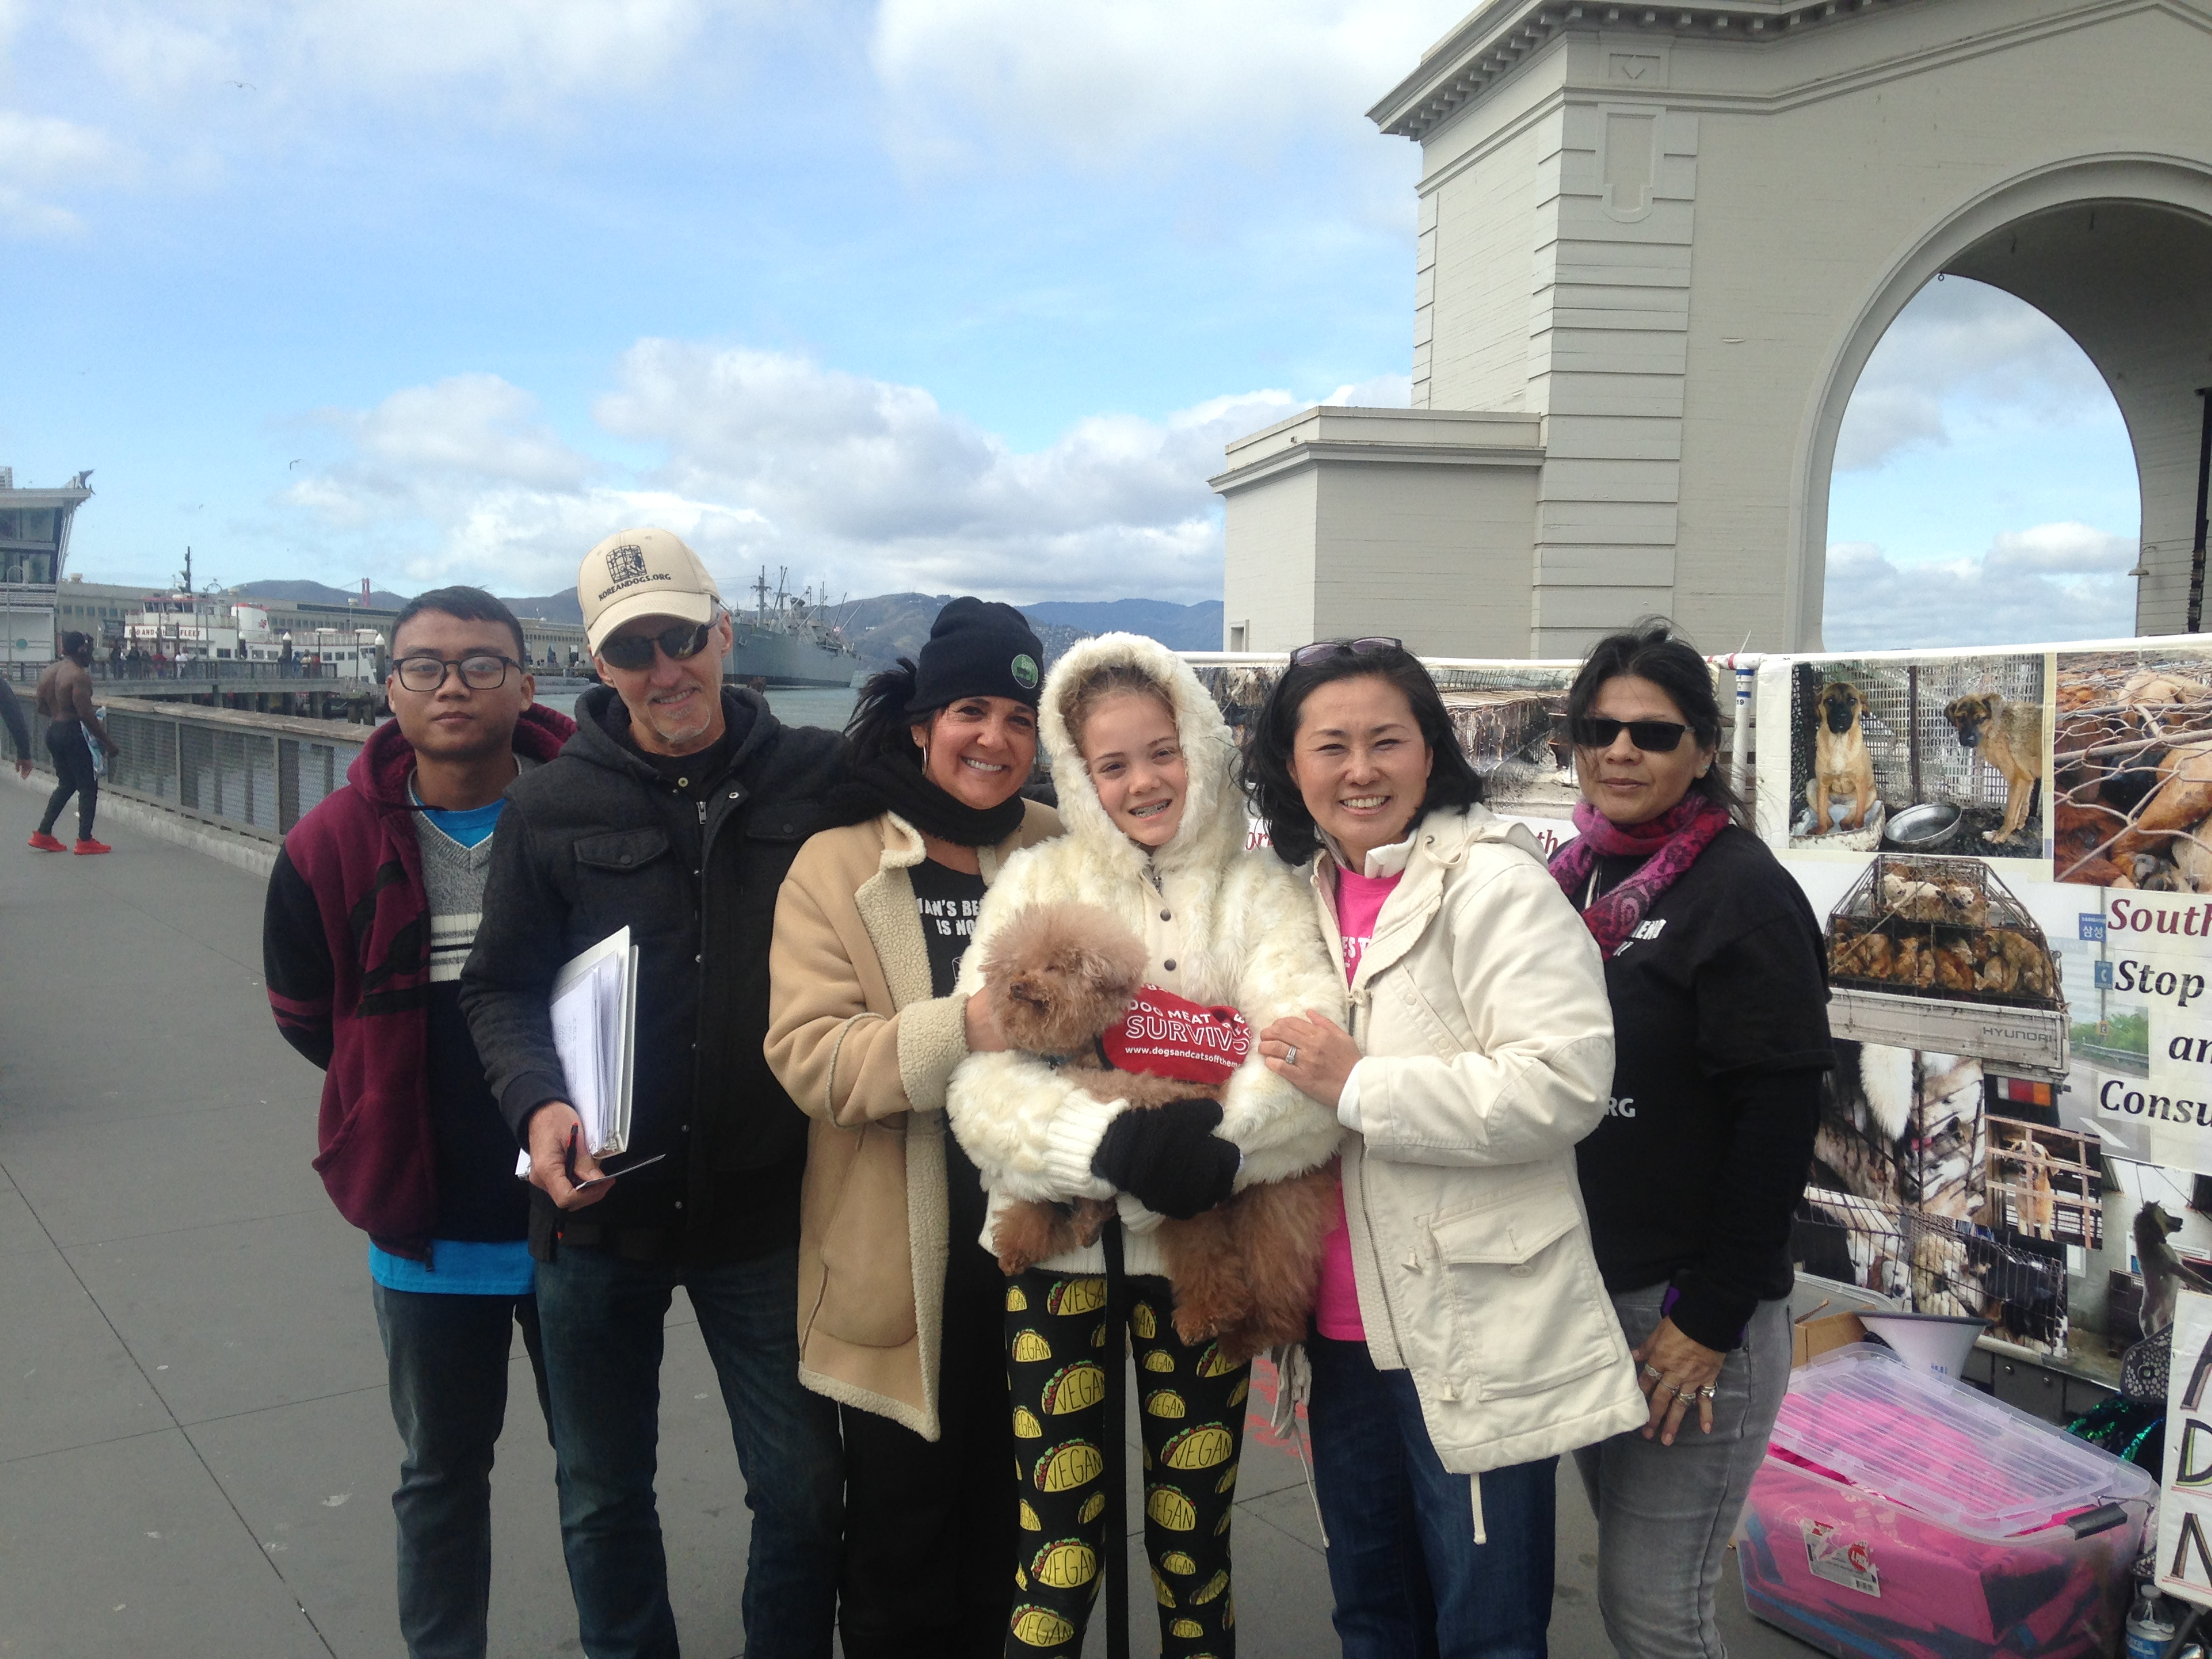 https://koreandogs.org/san-francisco-fishermans-wharf-leafleting-event-february-24-2018/?utm_source=sendinblue&utm_campaign=Dogs_Slaughterhouses_in_School_Cleanup_Zone!___Milwaukee__Daegu_Sister_City&utm_medium=email